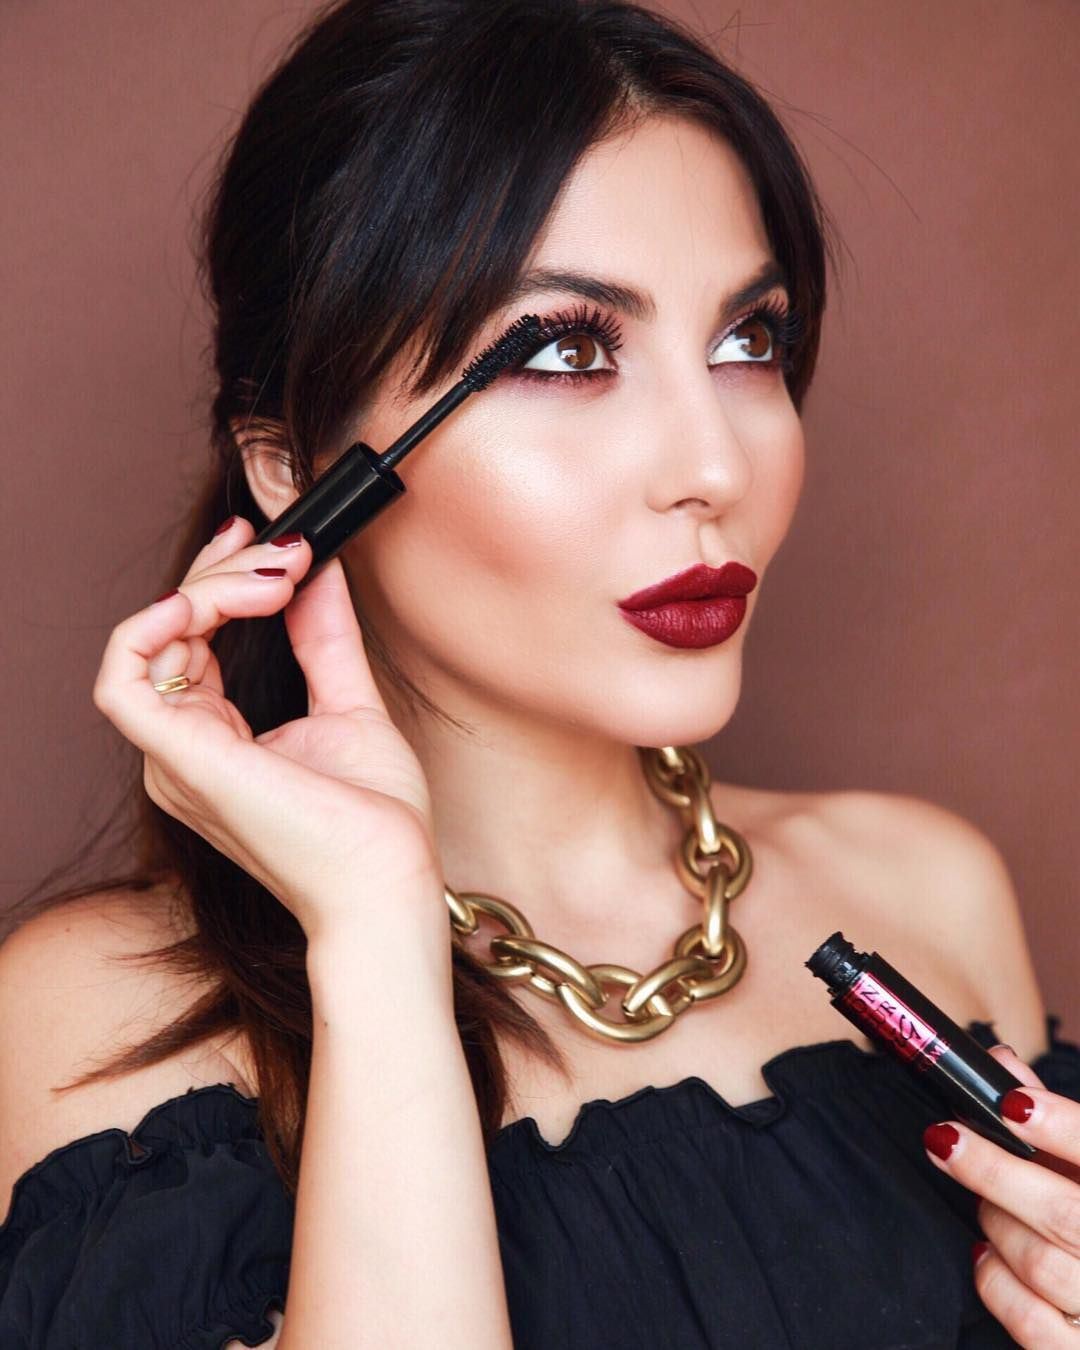 Pin by joelle p on Beauty and Makeup in 2019 | Eye Makeup, Fall makeup tutorial, Eye makeup tips